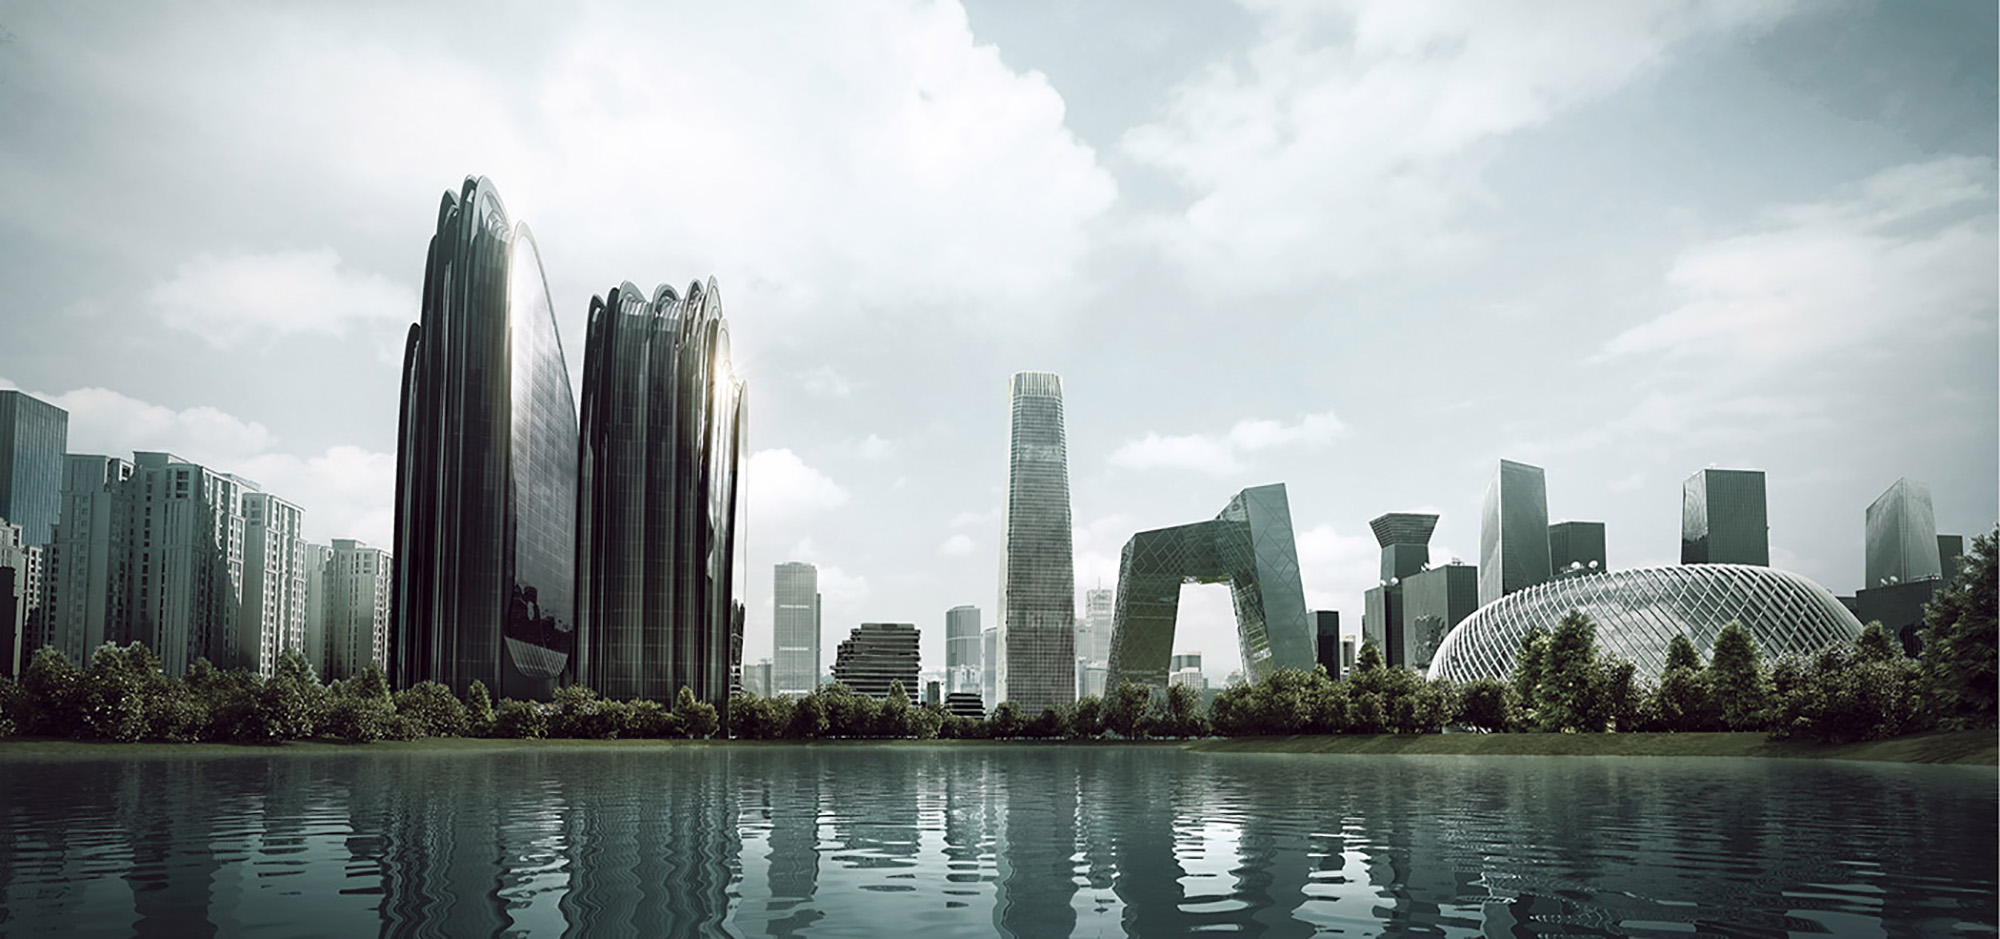 mm_Chaoyang Park Plaza design by MAD Architects_10